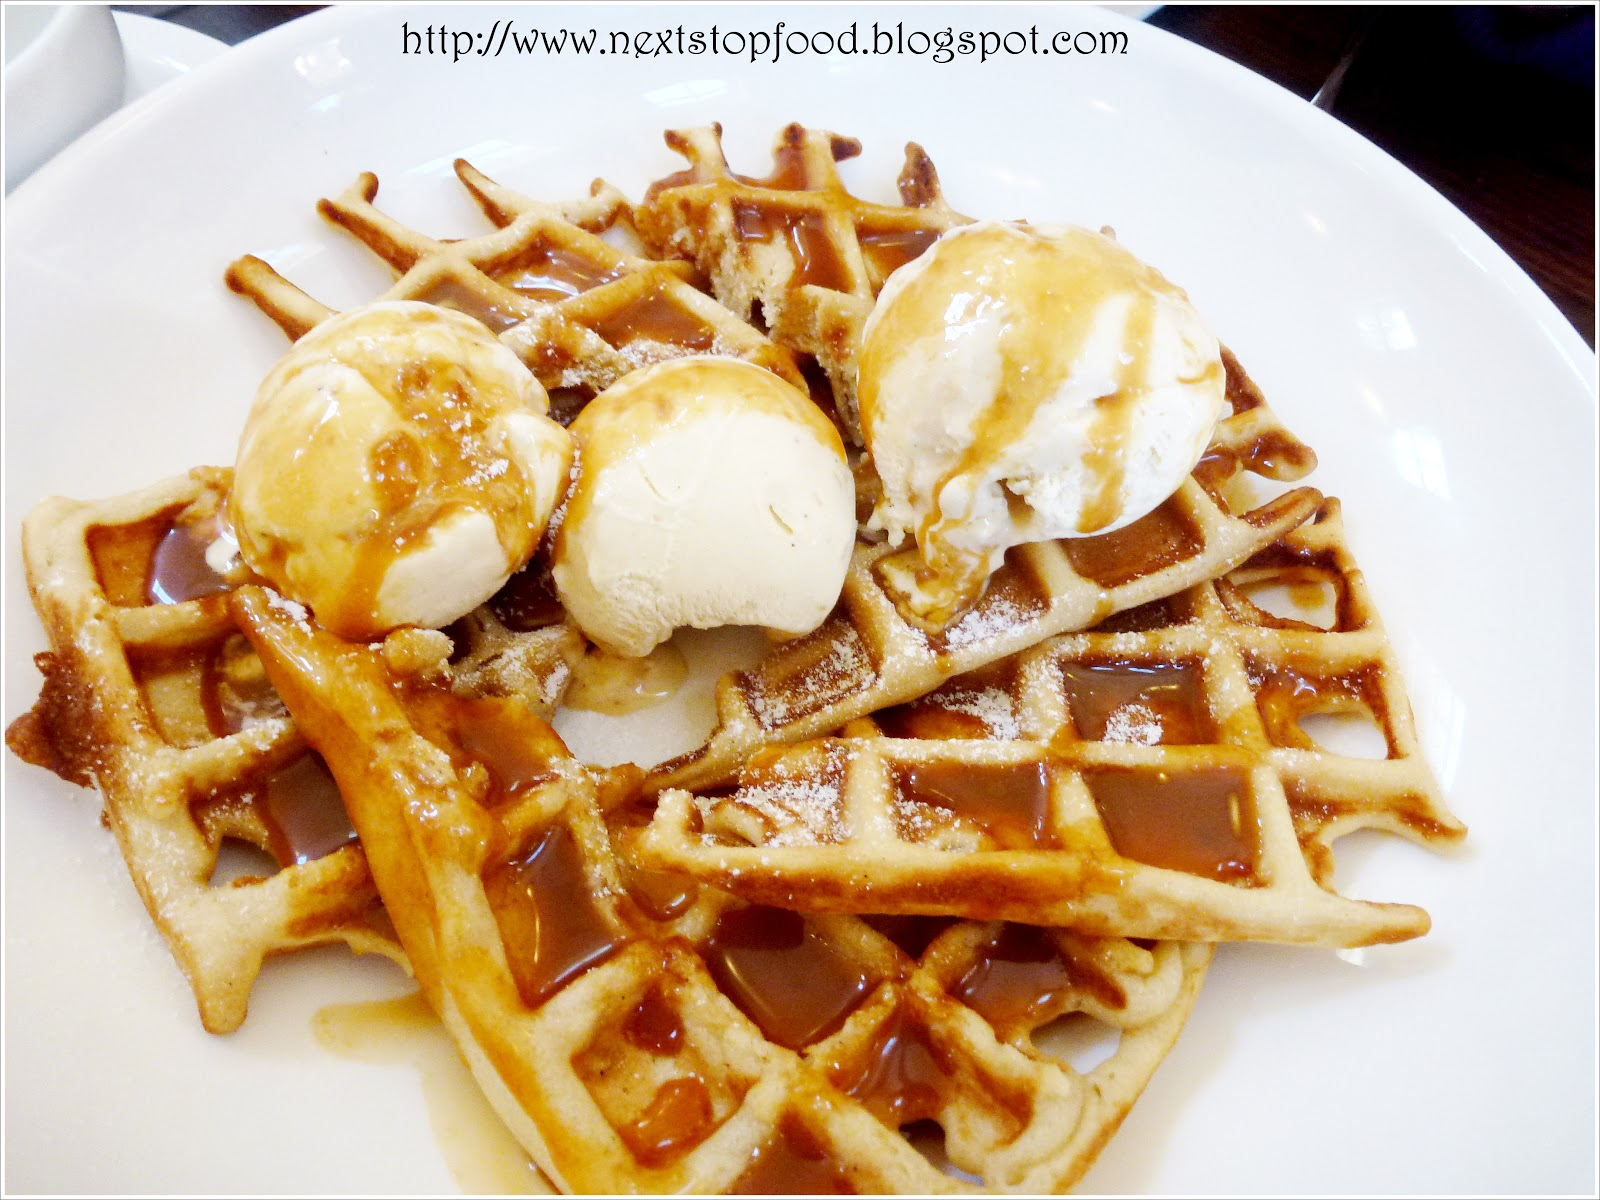 ... brown butter yeast waffles waffles with maple syrup waffles with maple